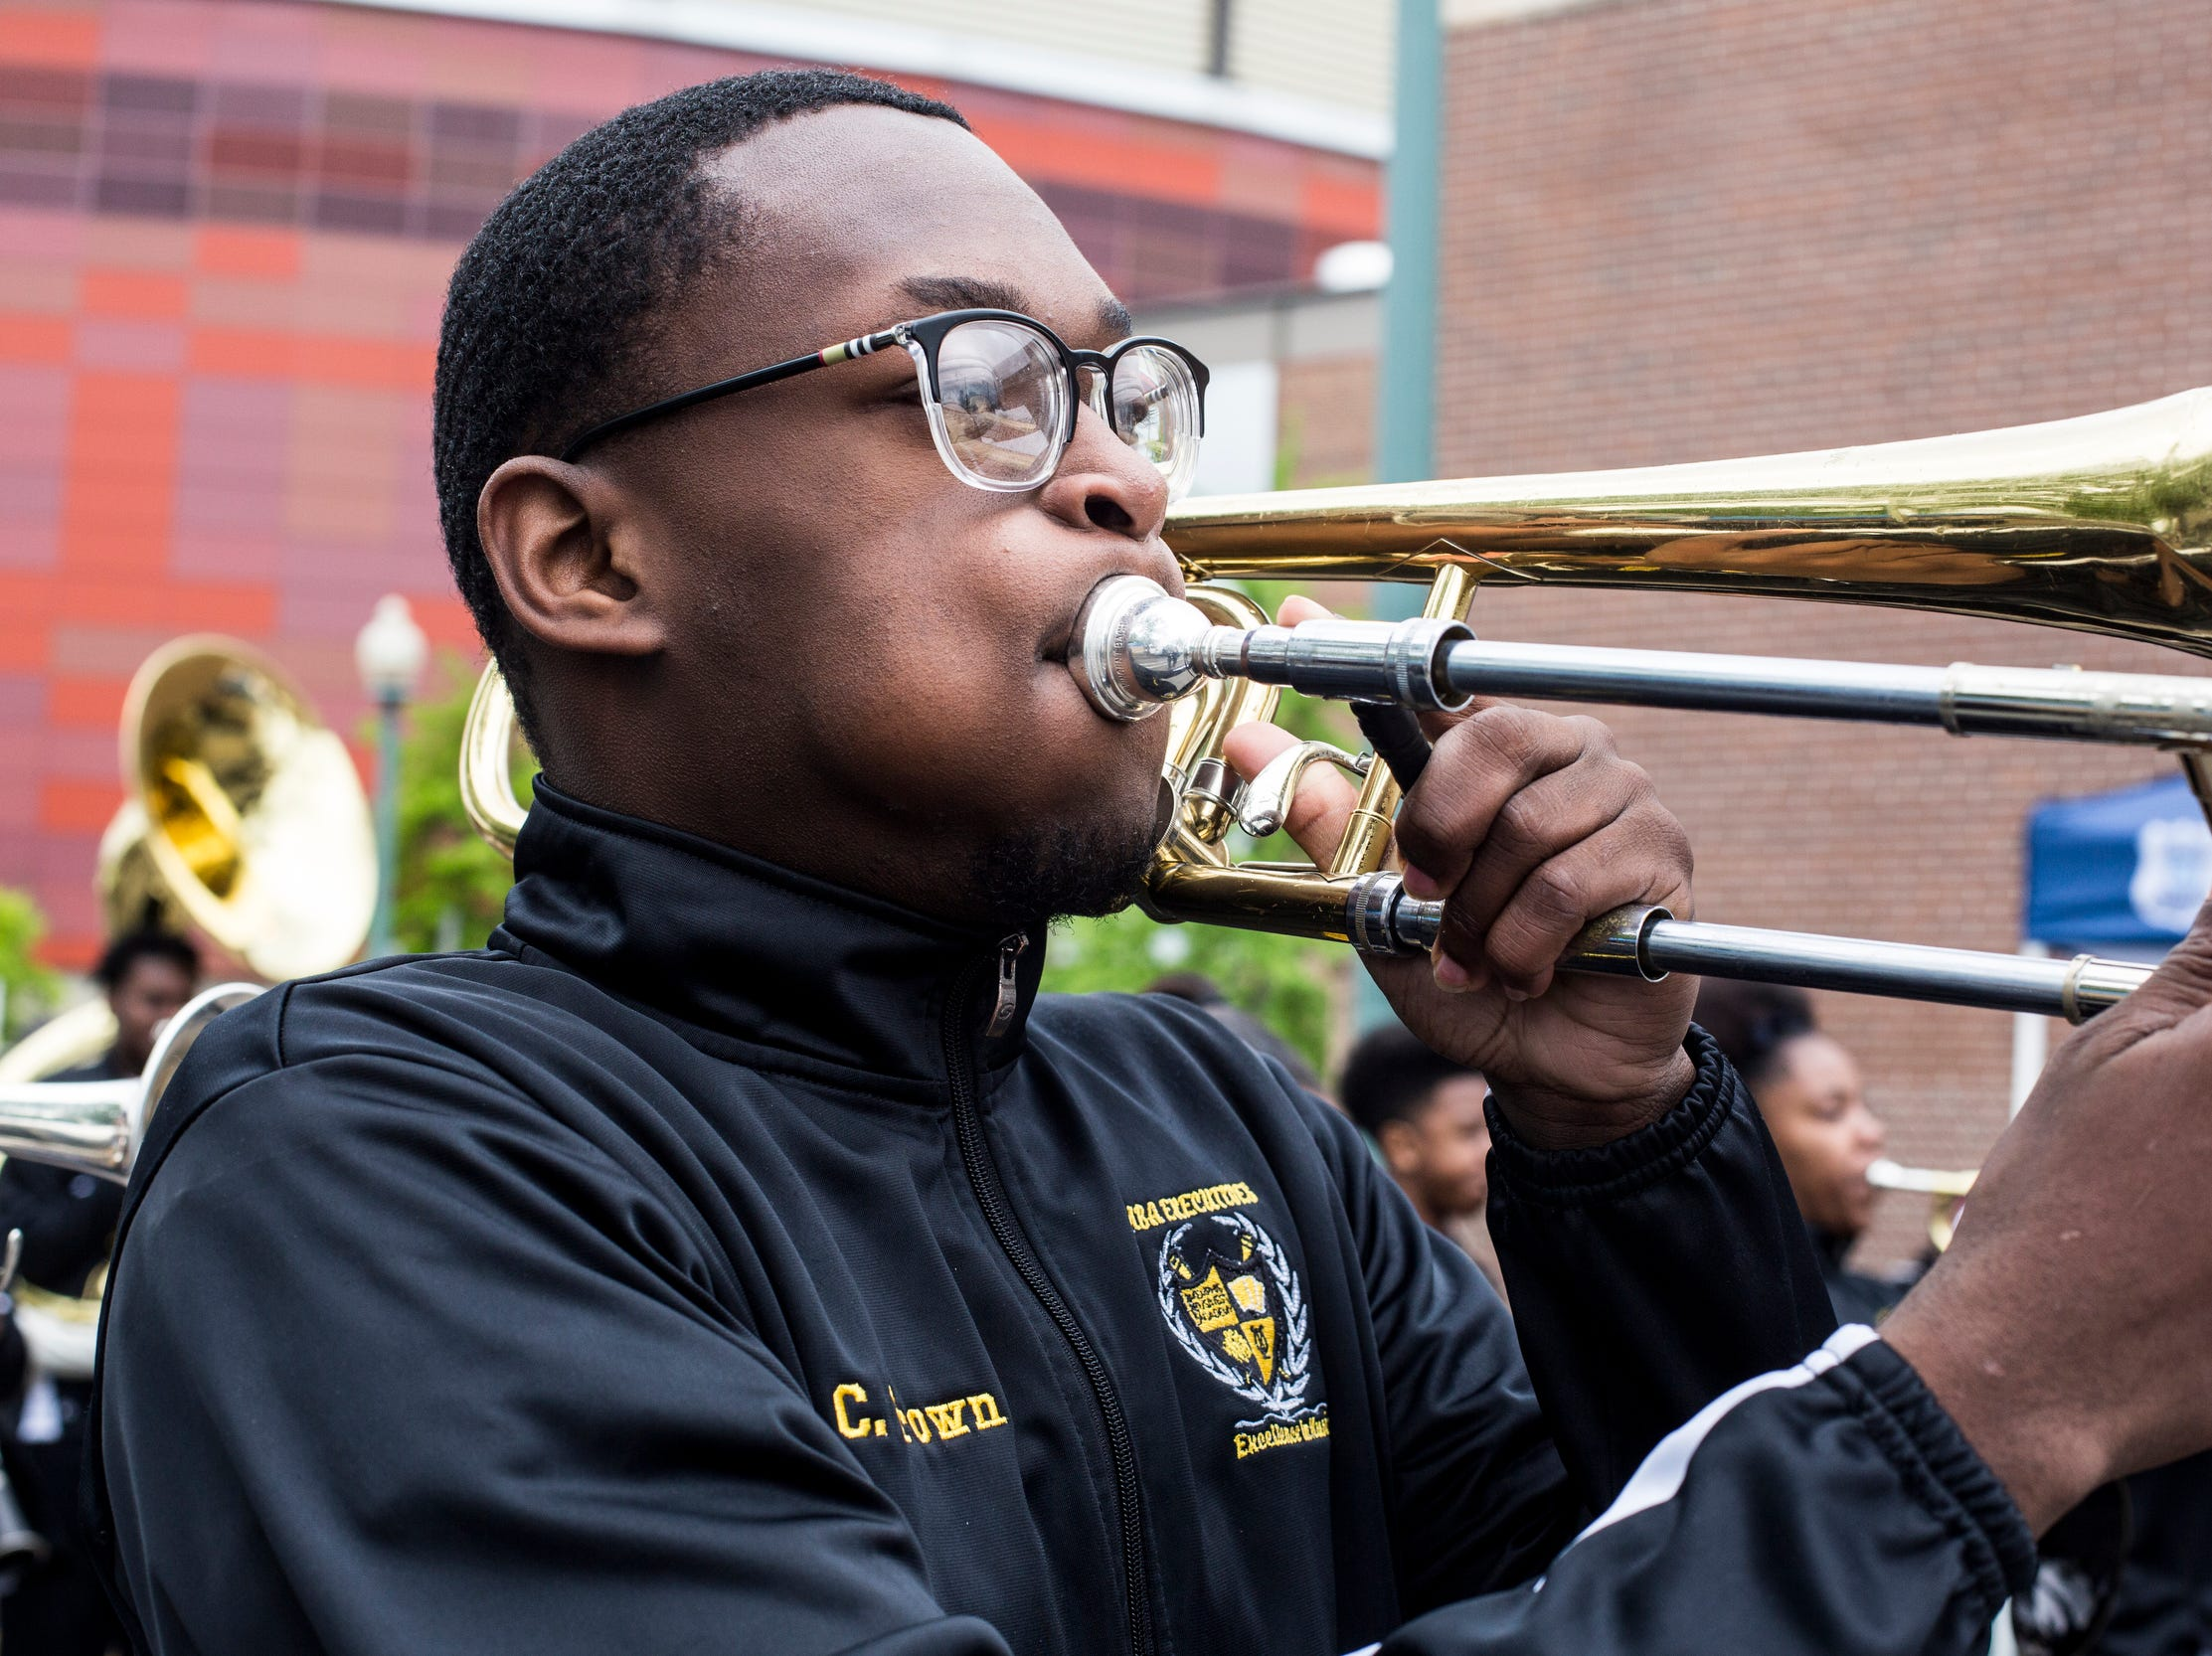 Christian Brown plays the trombone with the Memphis Business Academy during the Africa in April International Diversity Parade on Friday, April 19, 2019. The 33rd annual Africa in April Cultural Awareness Festival runs through April 21 at Robert Church Park.